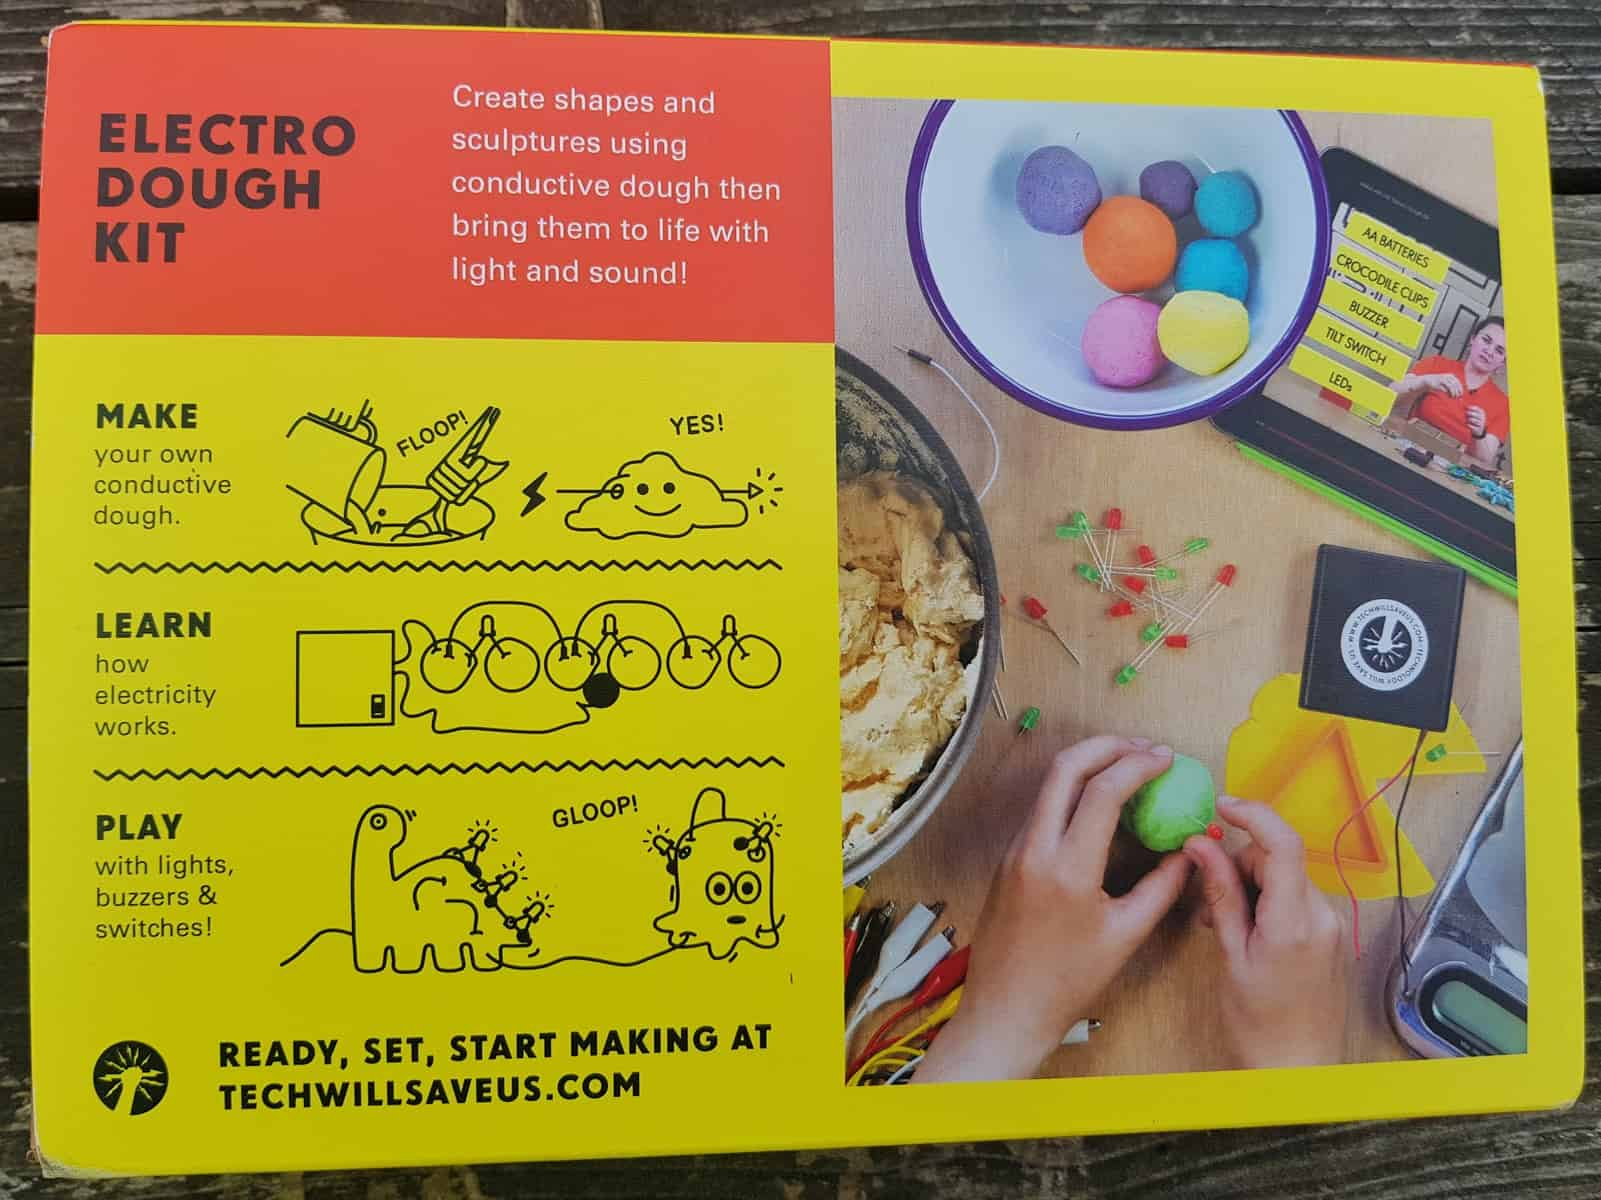 Electro dough instructions and ingredients with diagrams